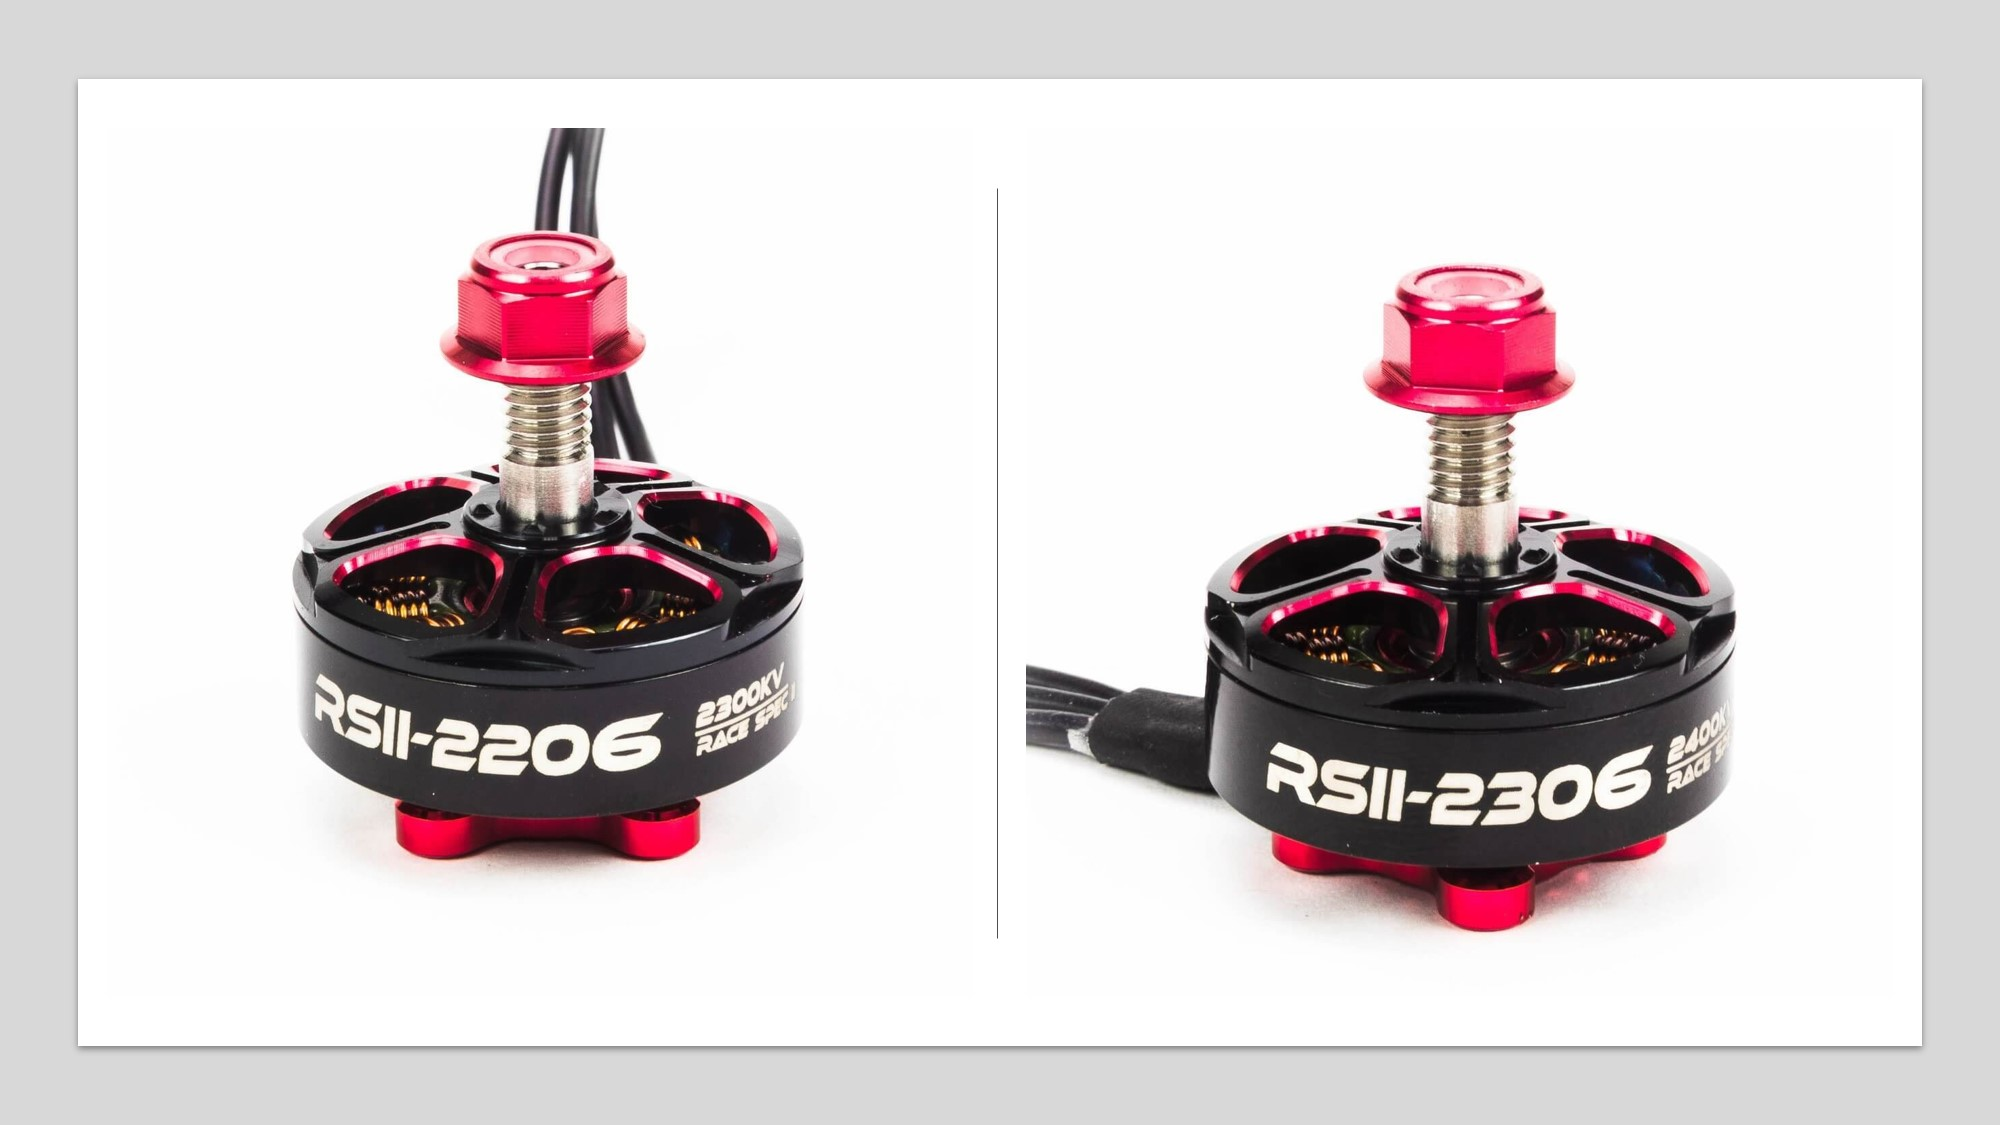 Emax 🔥 Red Bottom V2 Motors  Announced (RSII 2206 & RSII 2306)